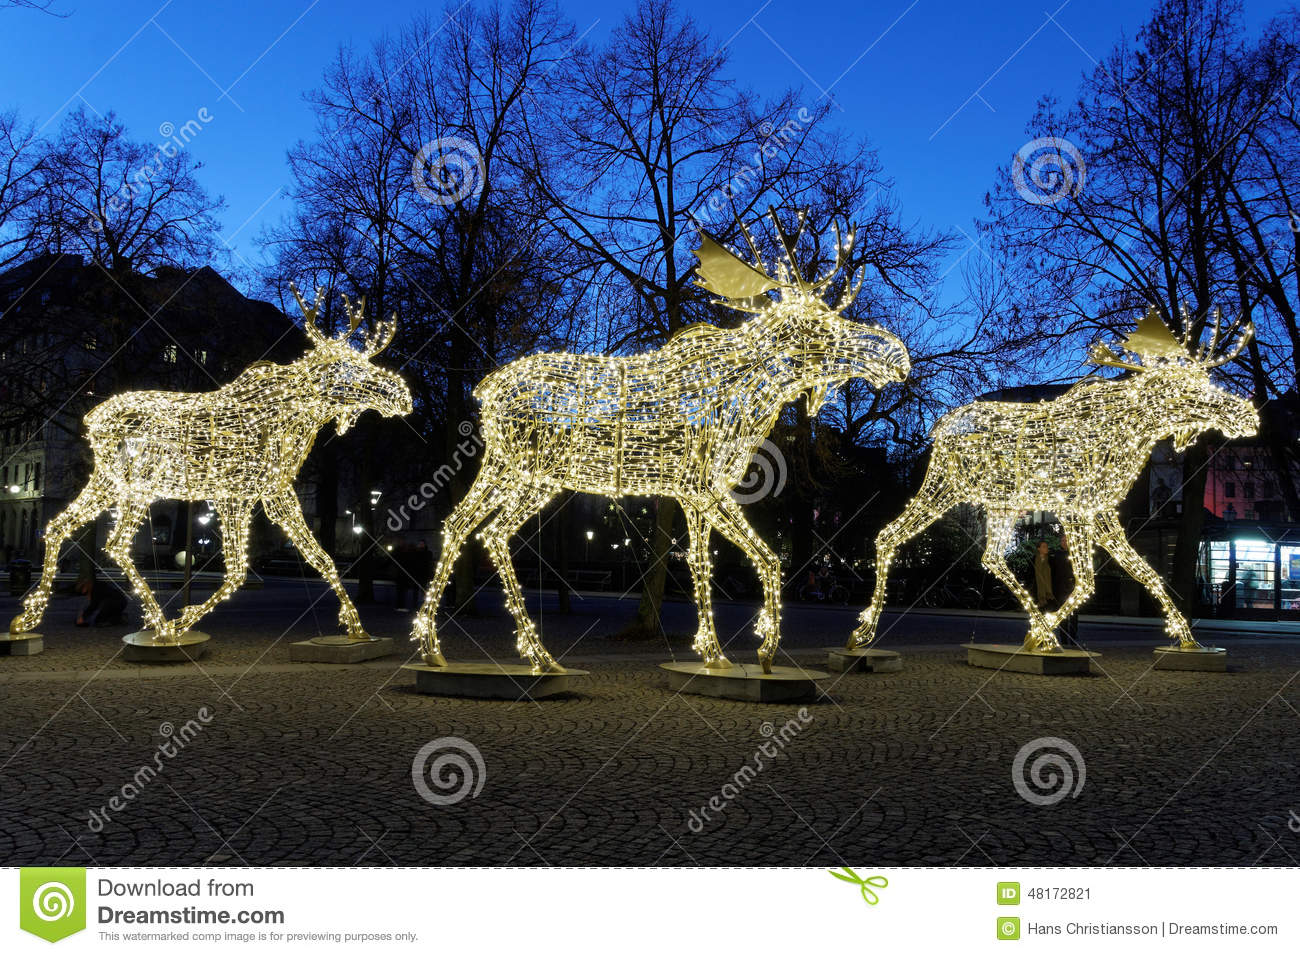 download christmas moose floc made of led light stock image image of deer silhouette